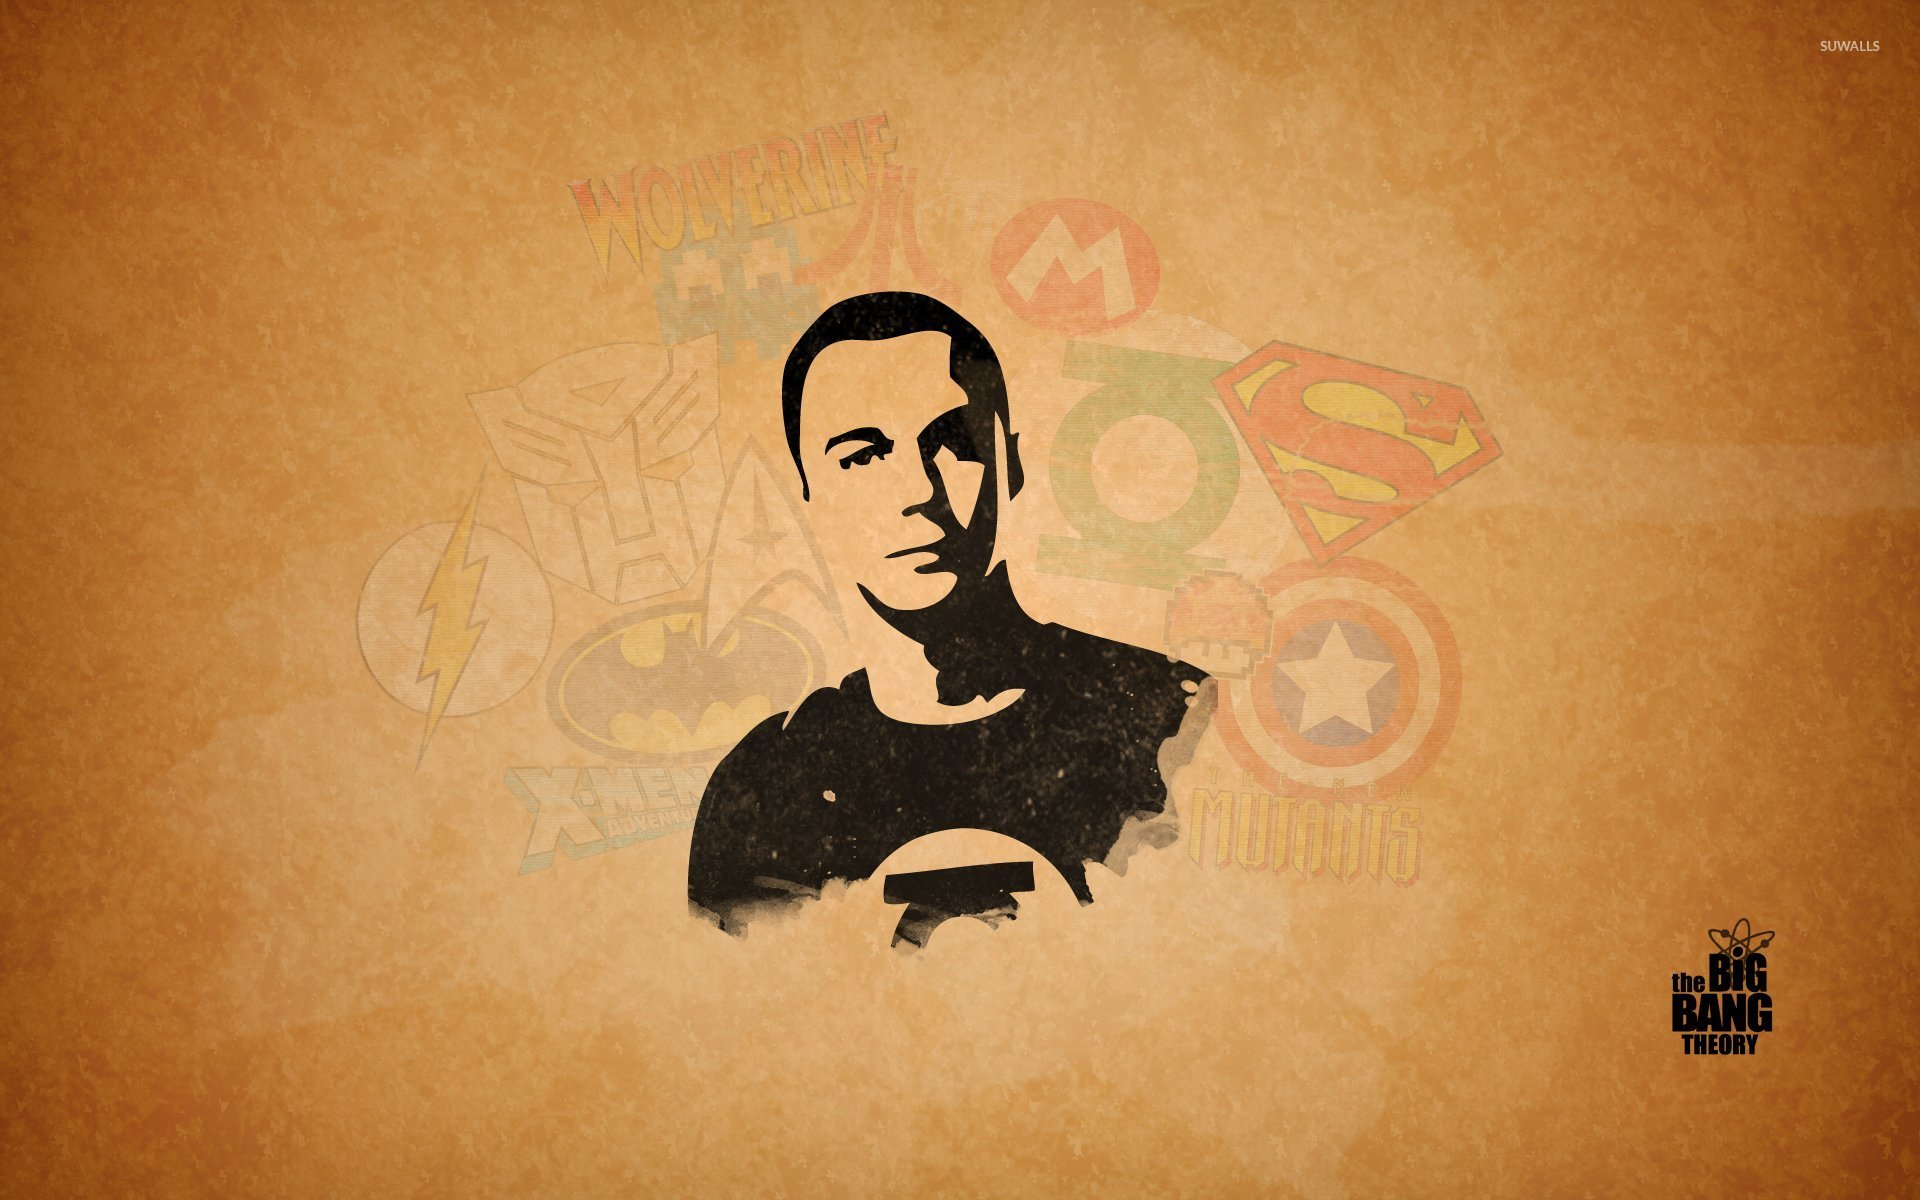 Sheldon Cooper From The Big Bang Theory Wallpaper Tv Show